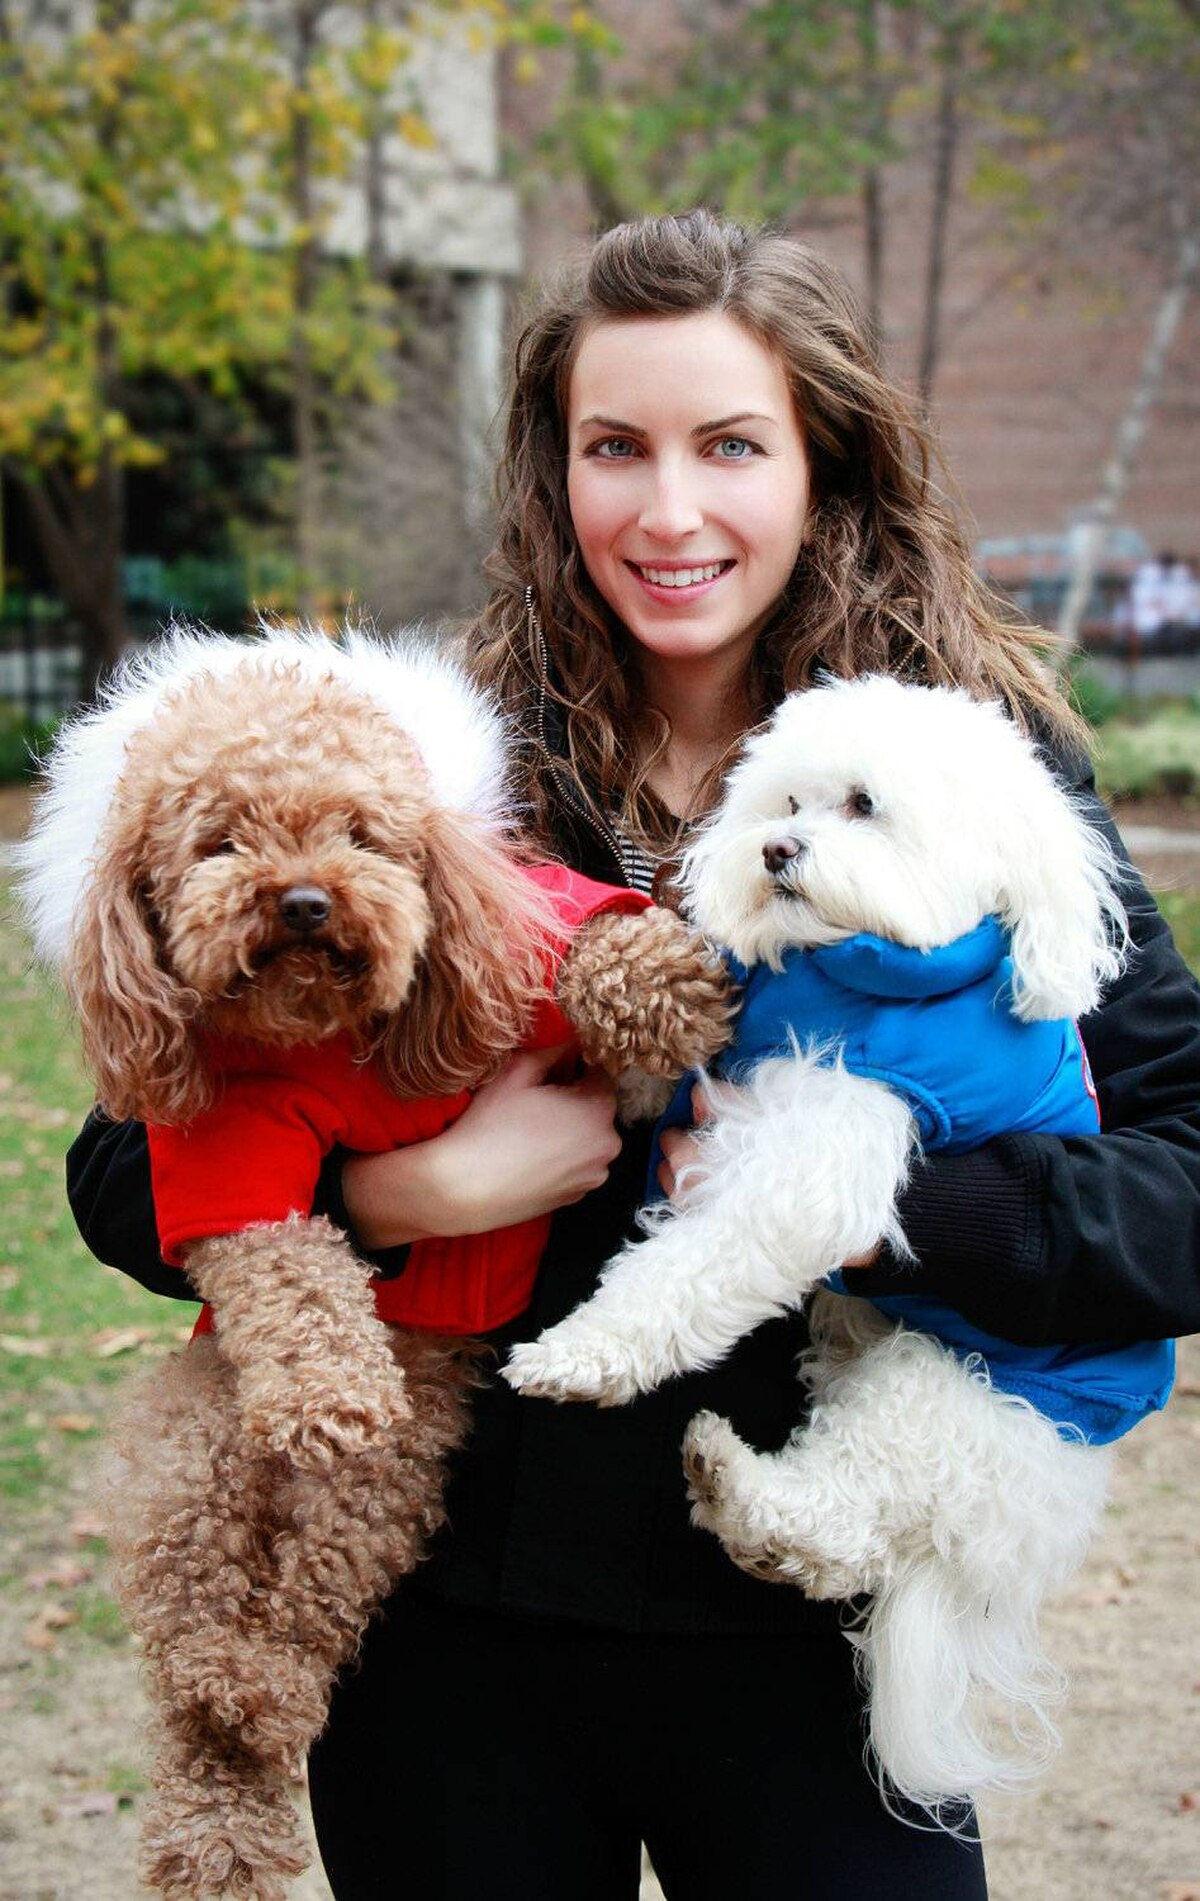 Canada Pooch owner Jacqueline Prehogan with her two furry friends, Kelev and Copper.